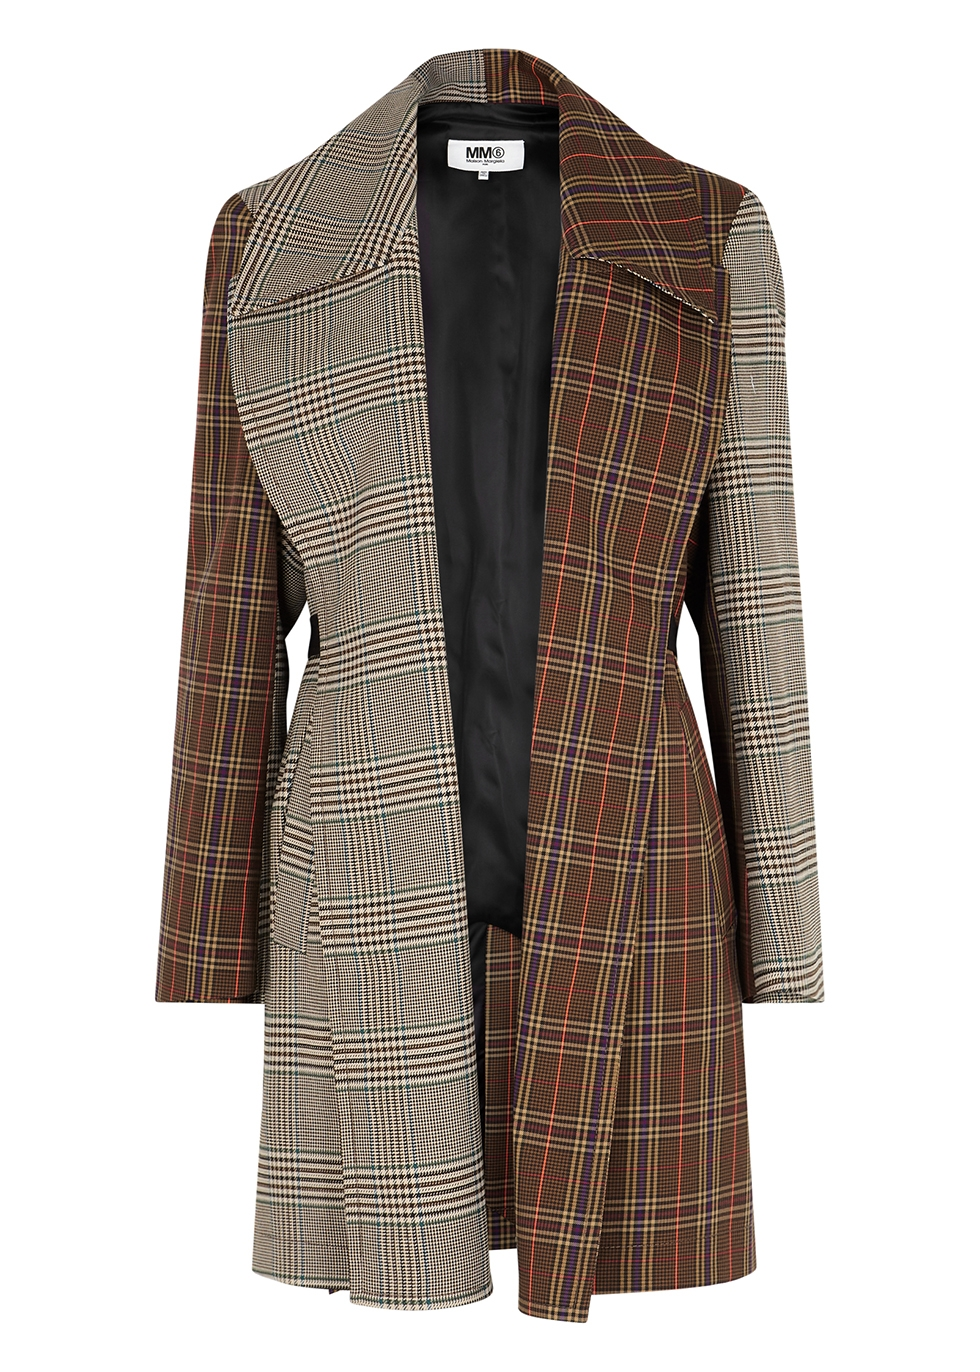 a9abda93e Designer Coats - Women's Winter Coats - Harvey Nichols